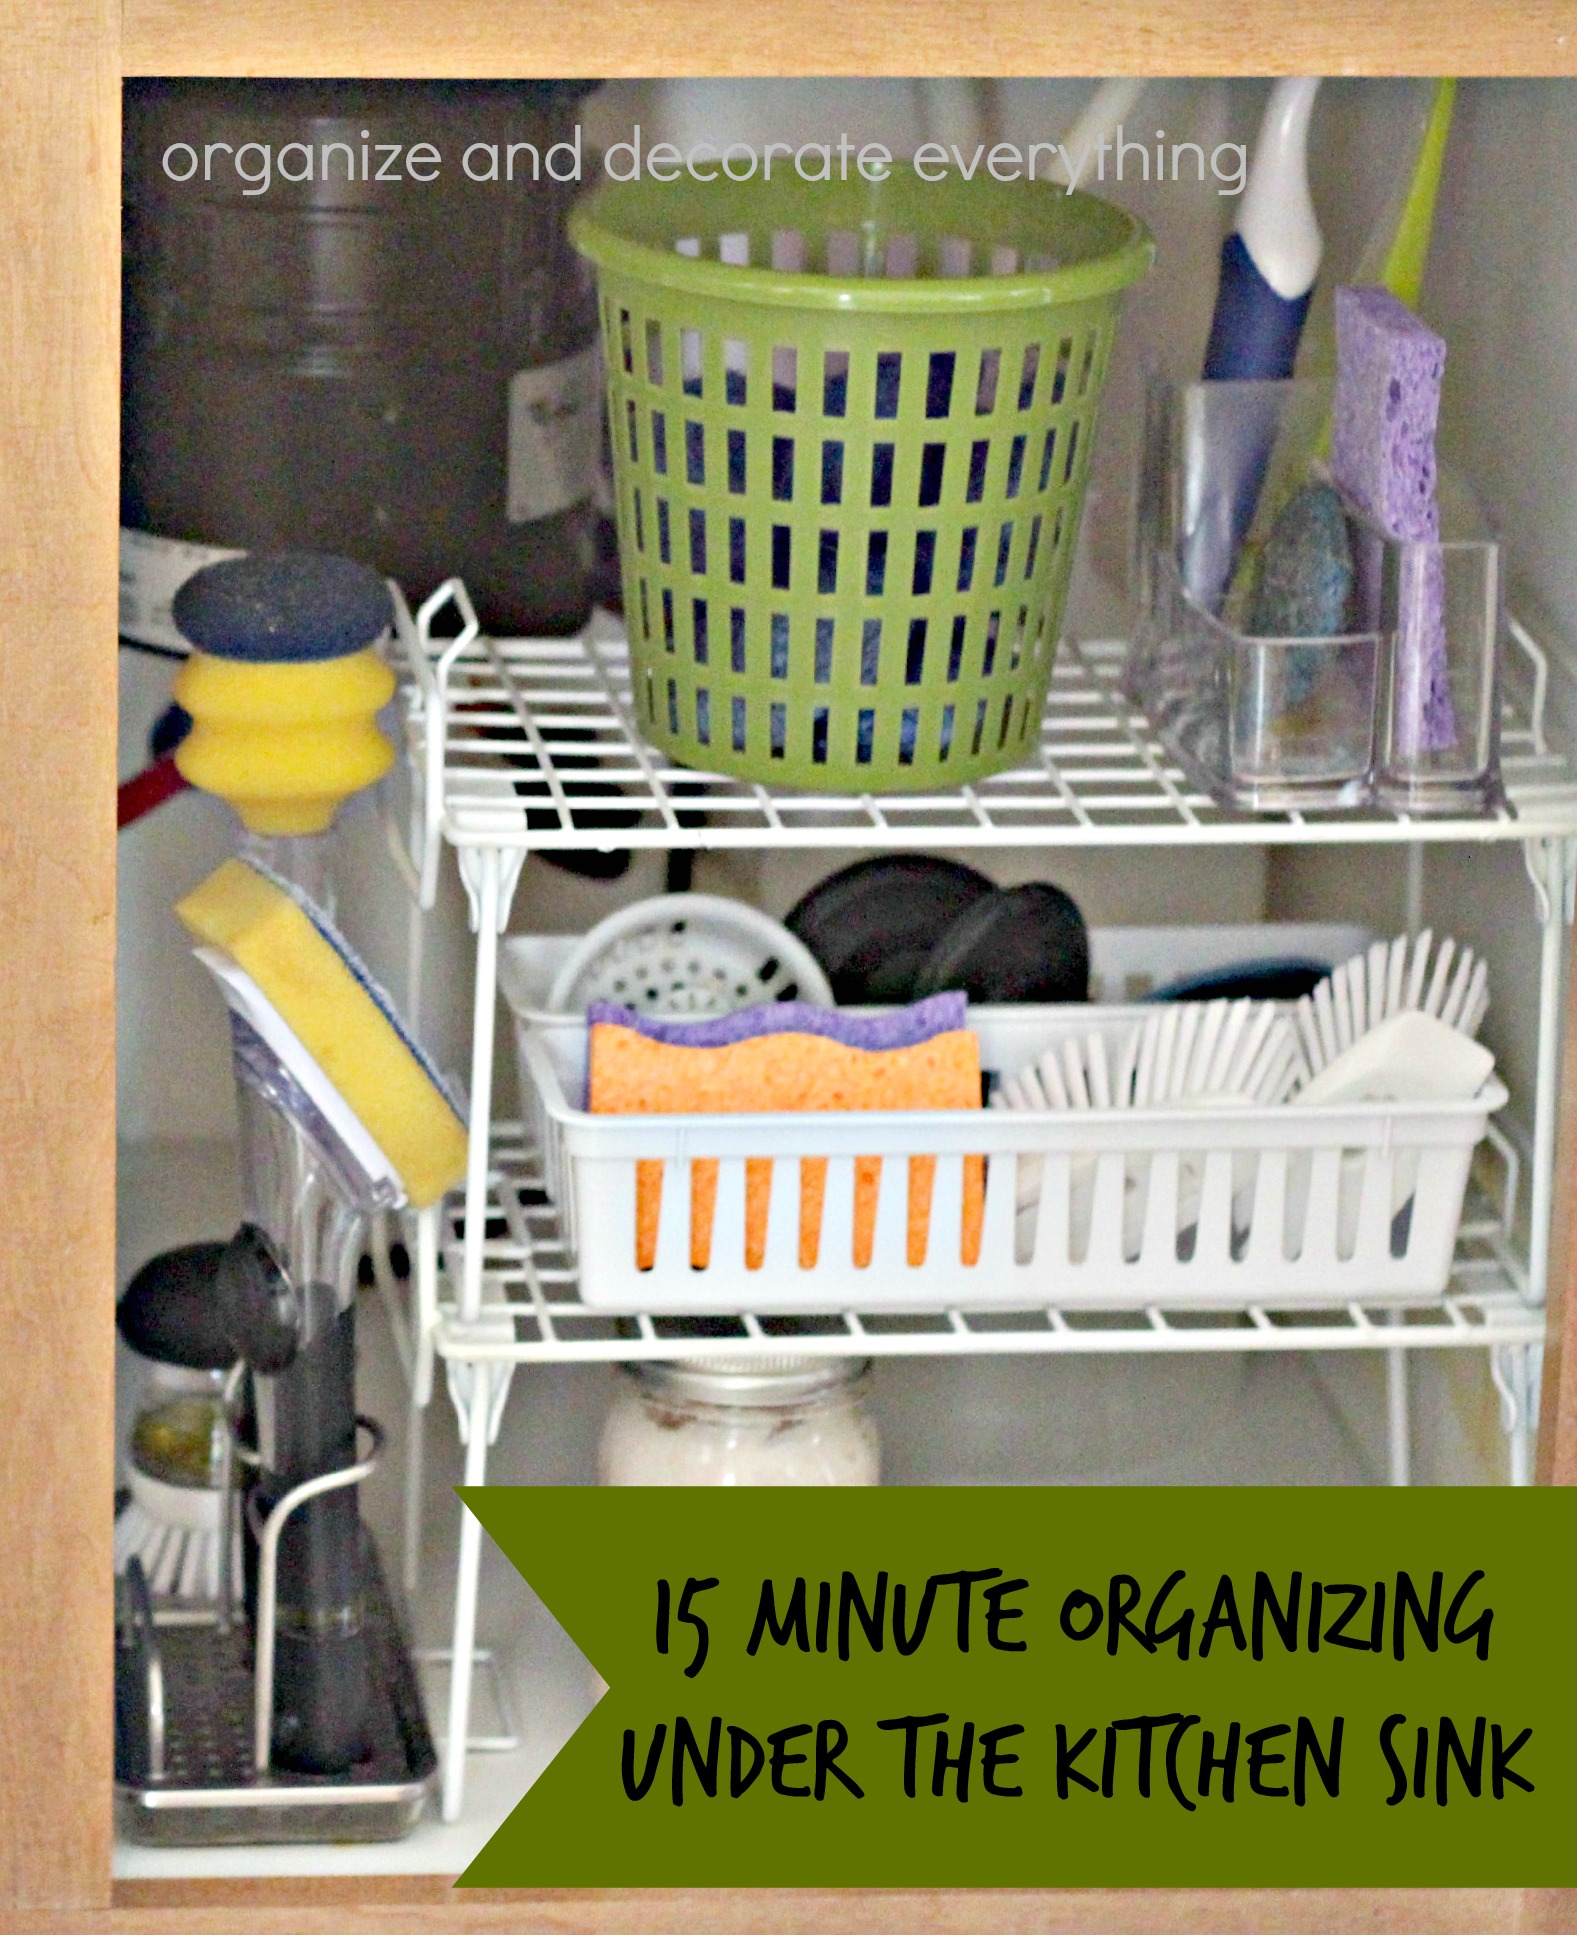 Under Kitchen Sink Organizing 31 Days Of 15 Minute Organizing Day 12 Under The Kitchen Sink